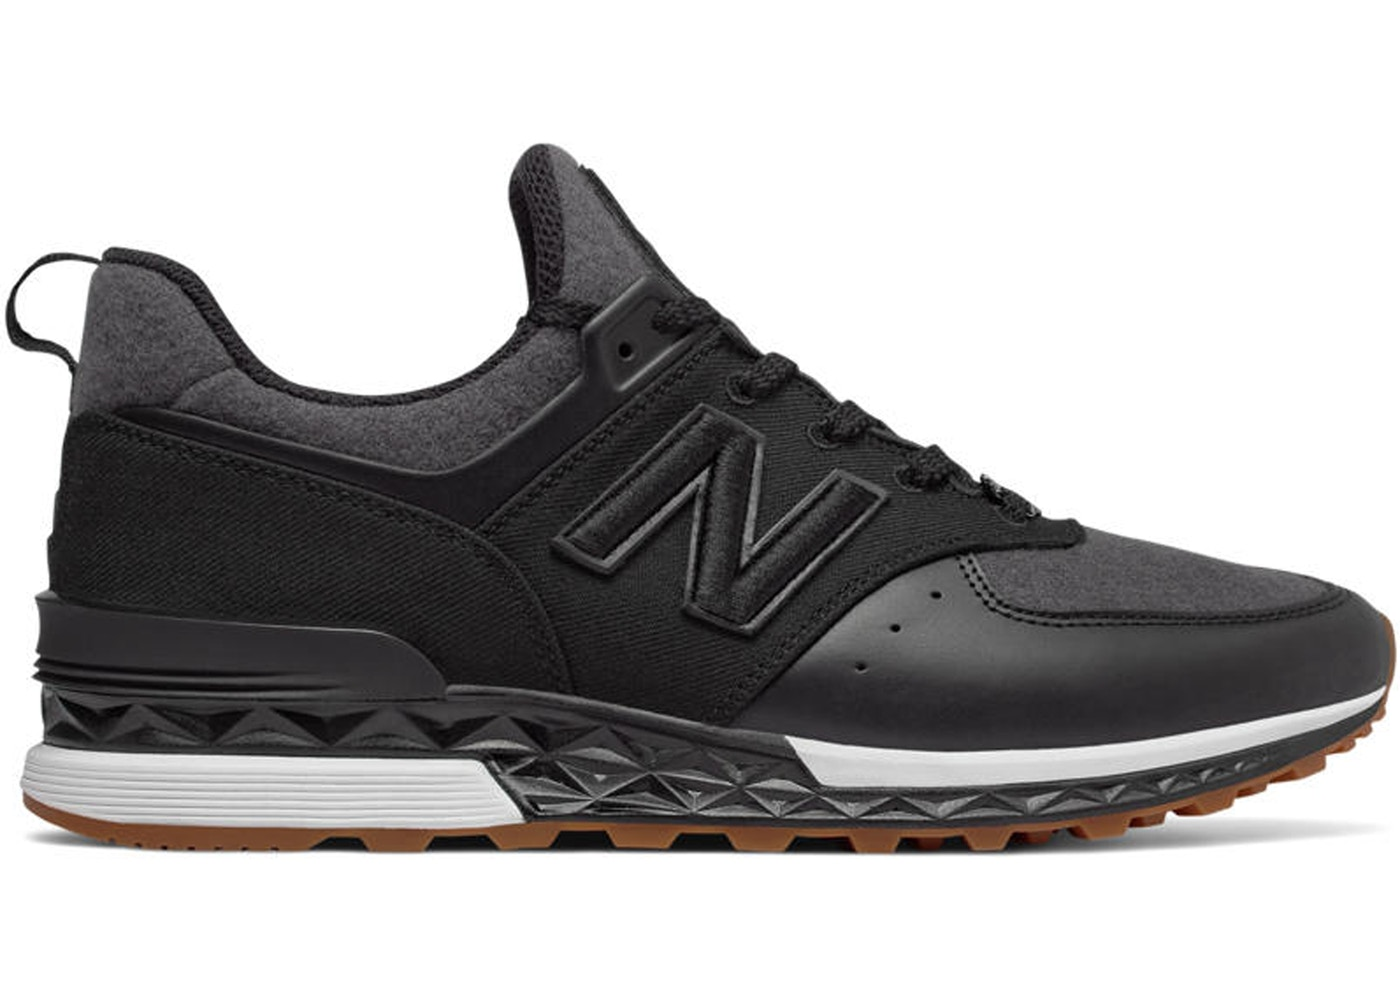 san francisco 23e66 5ab83 New Balance 574 Sport New Era Black Grey